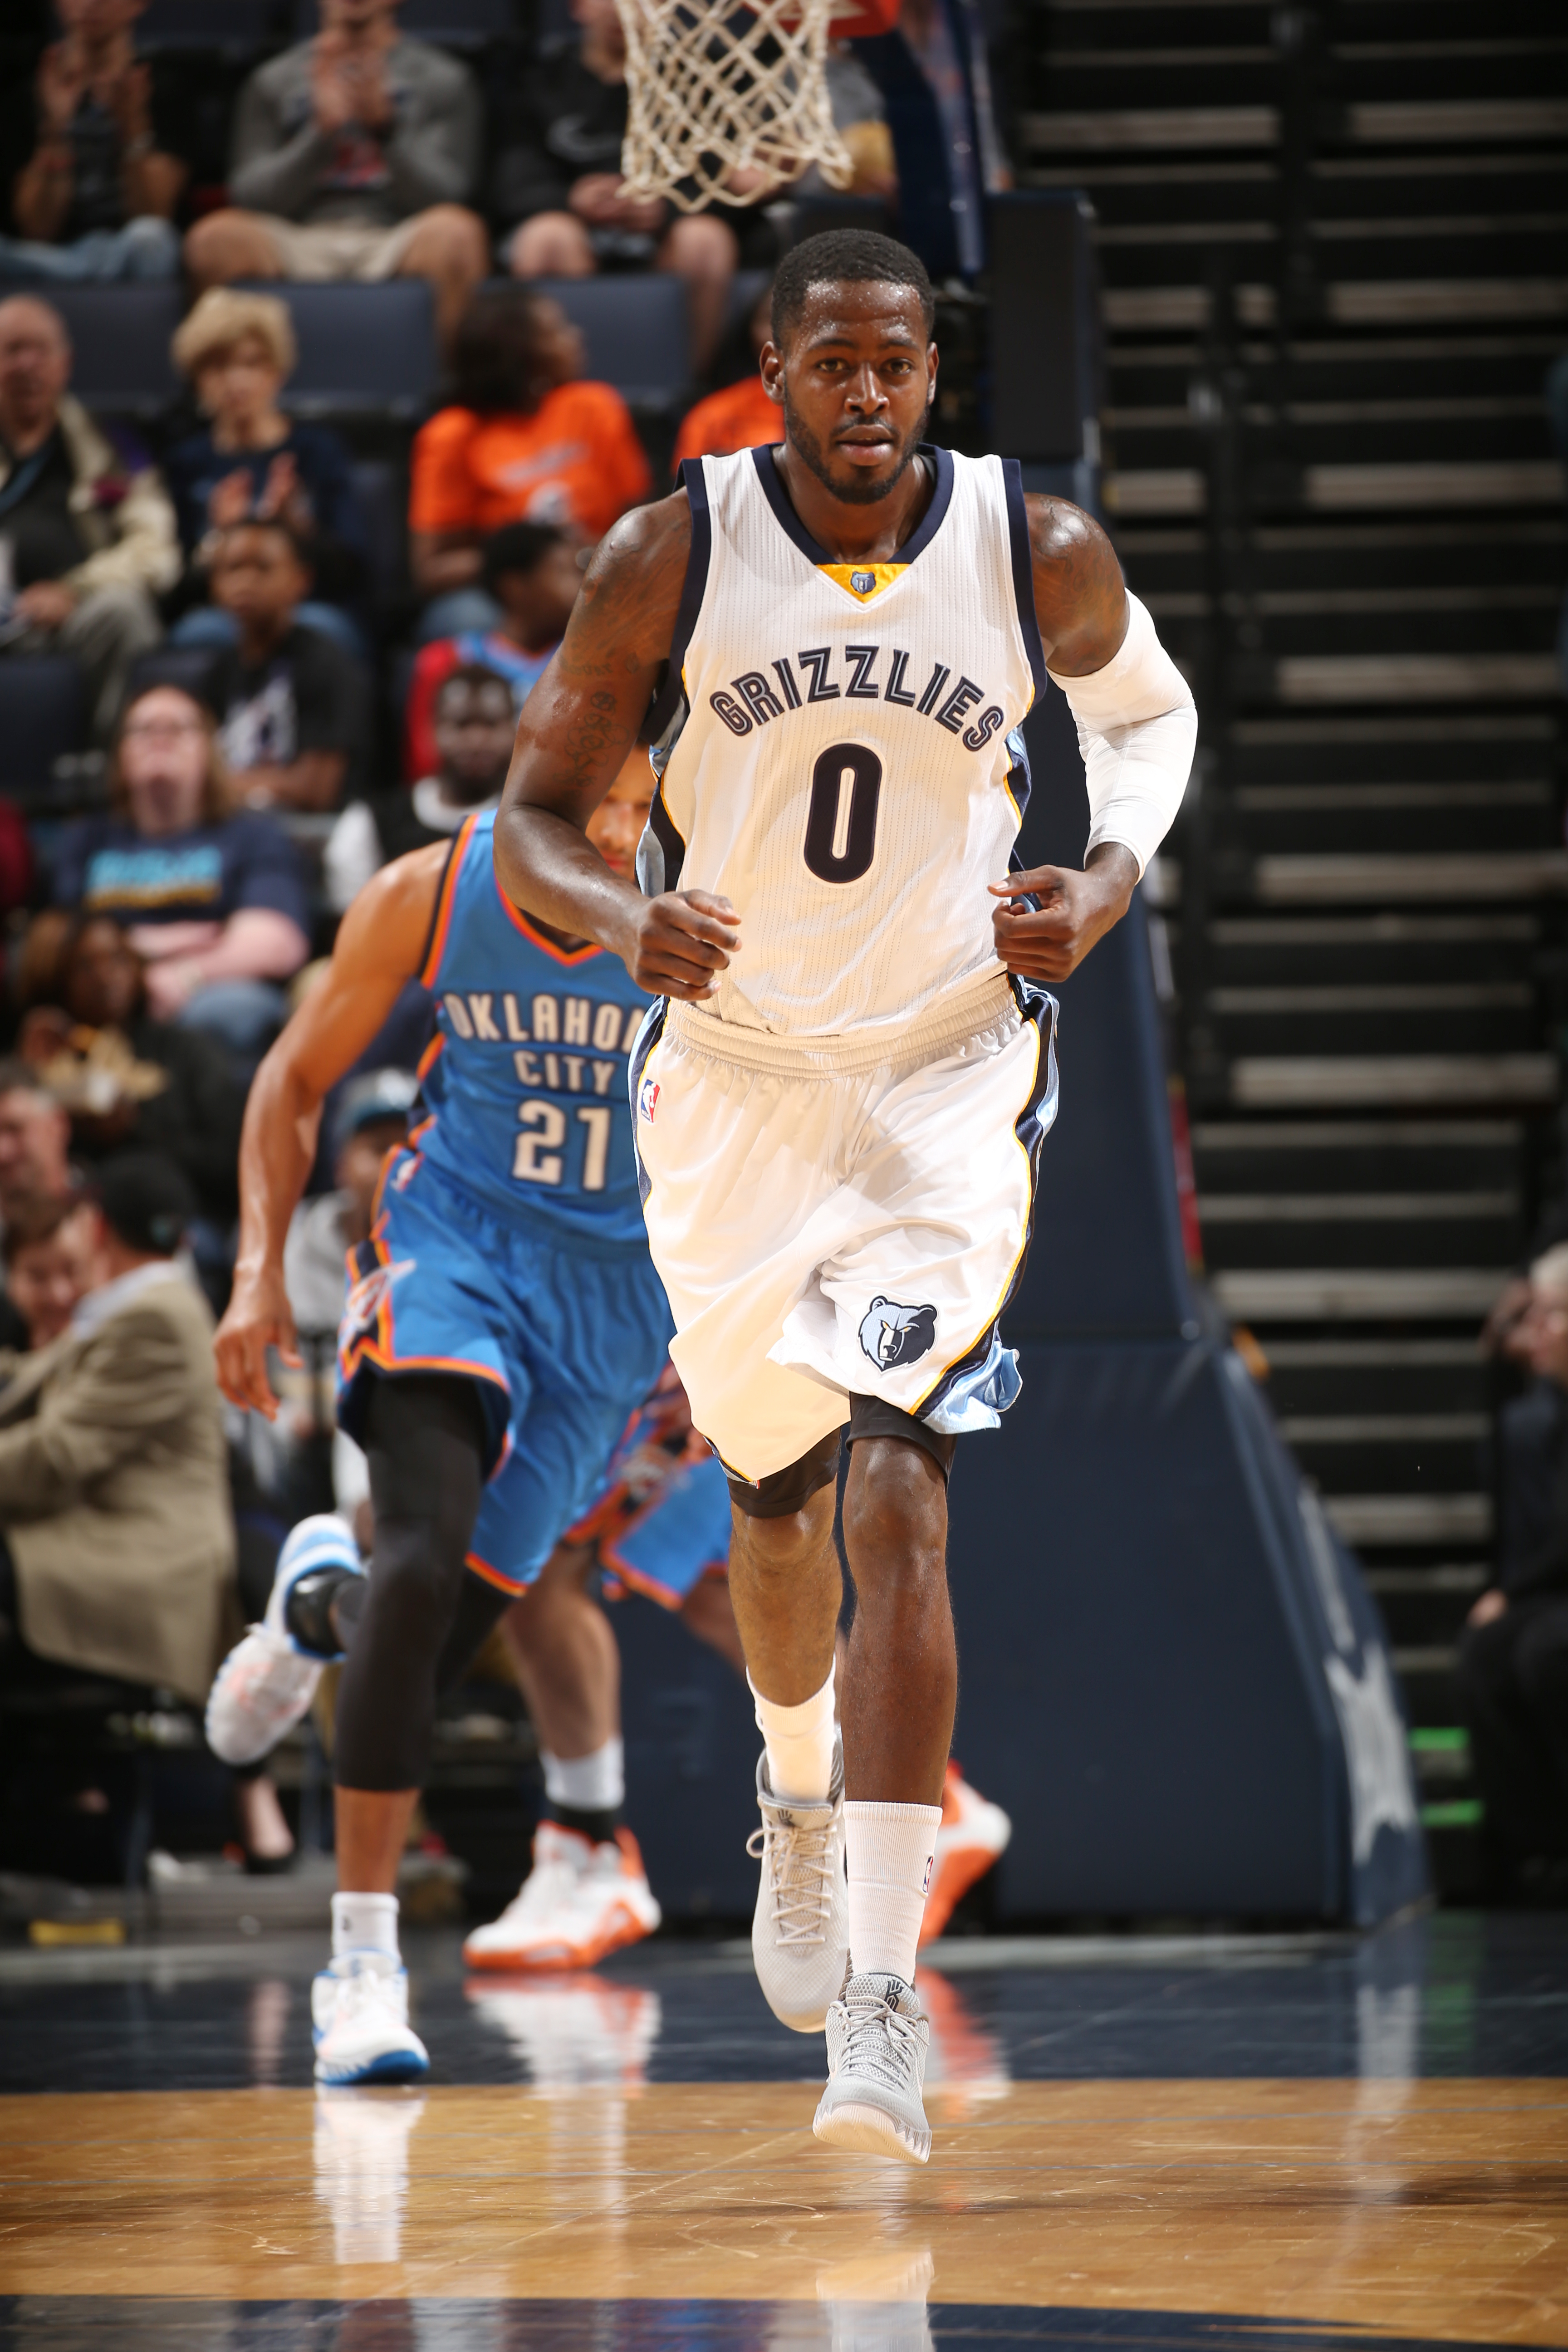 MEMPHIS, TN - OCTOBER 16:  JaMychal Green #0 of the Memphis Grizzlies stands on the court against the Oklahoma City Thunder during a preseason game on October 16, 2015 at FedExForum in Memphis, Tennessee. (Photo by Joe Murphy/NBAE via Getty Images)